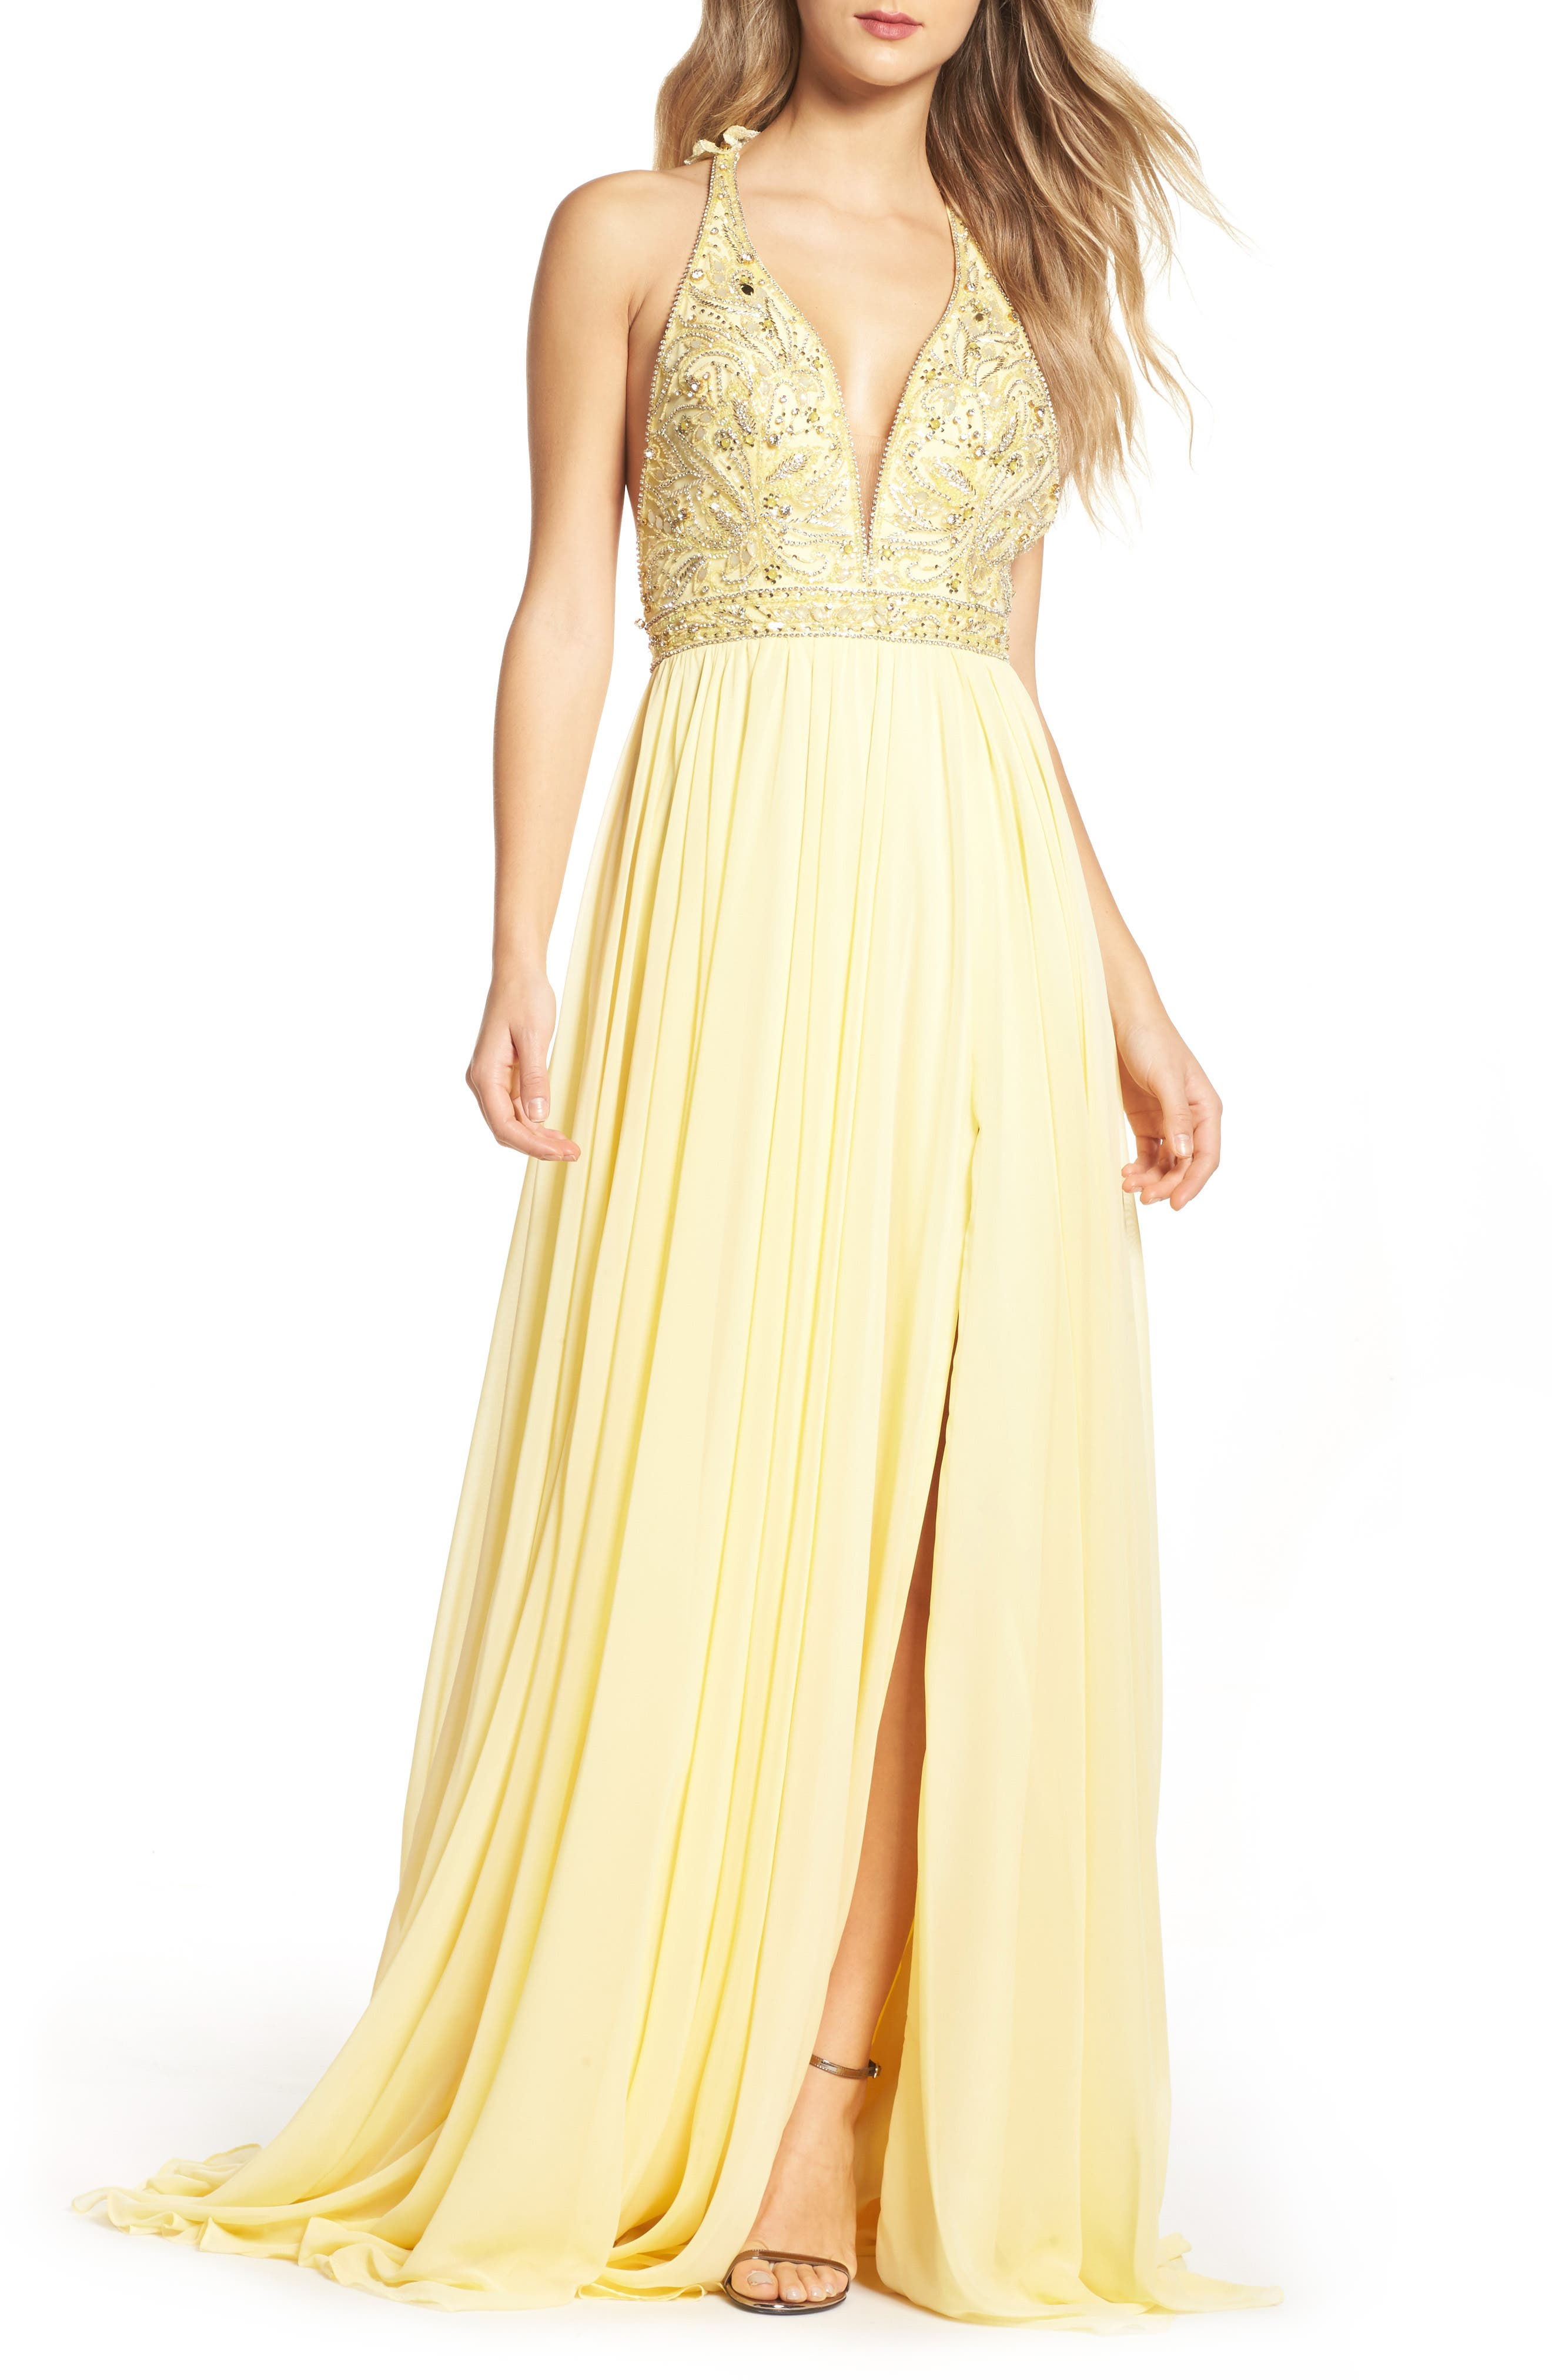 Beaded Halter Neck Gown,                             Main thumbnail 1, color,                             750